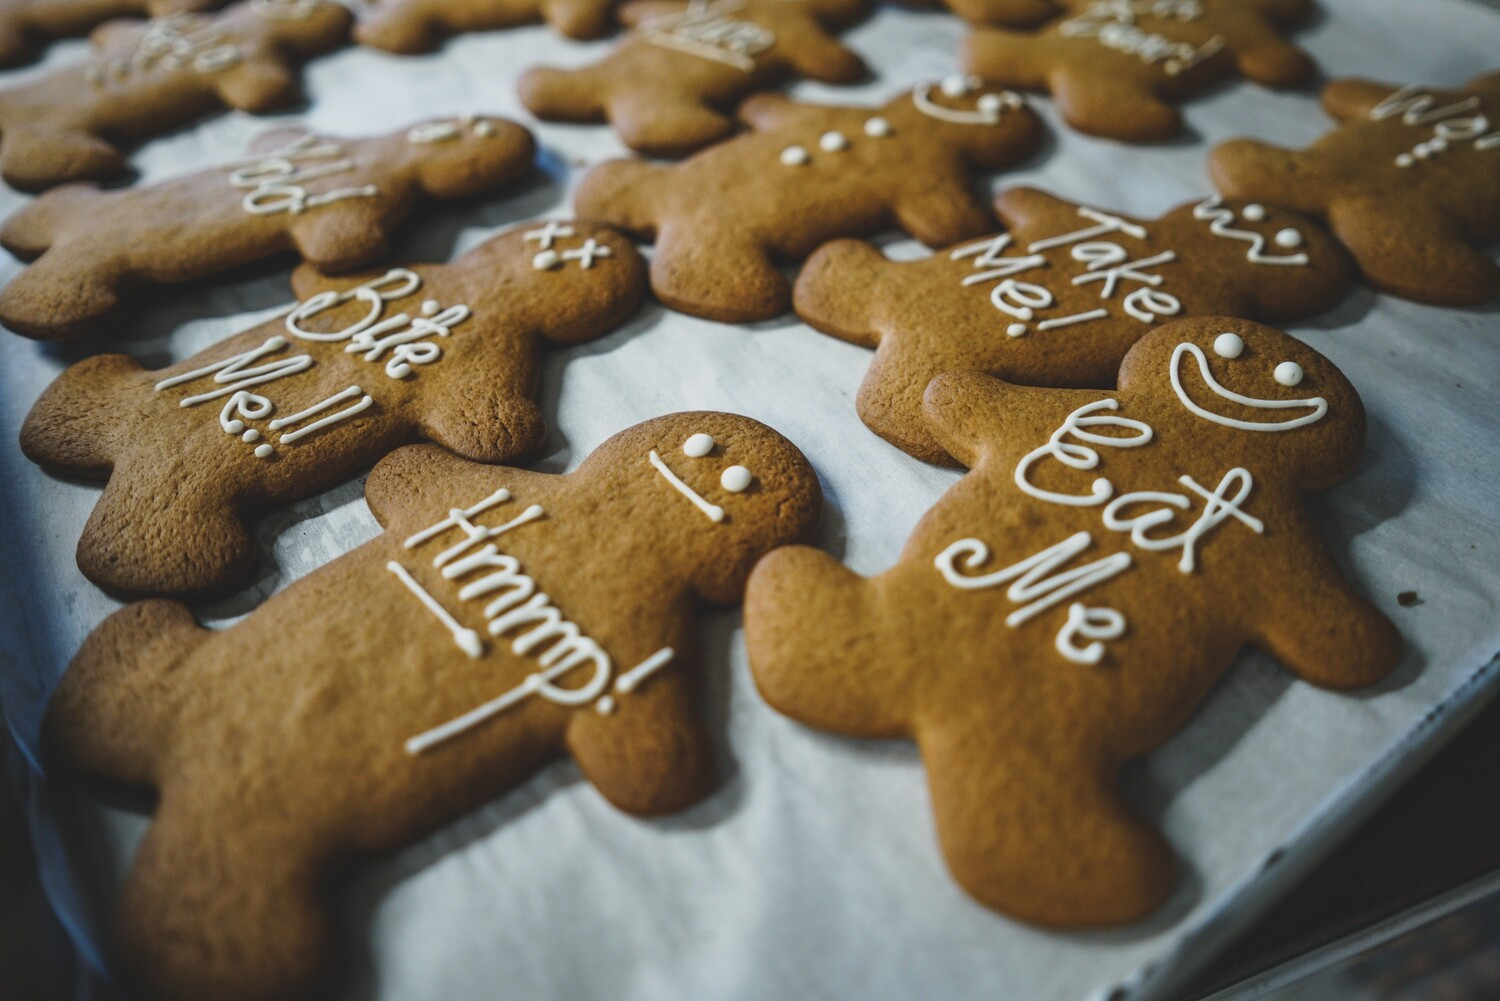 Gingerbread man (big cookie)